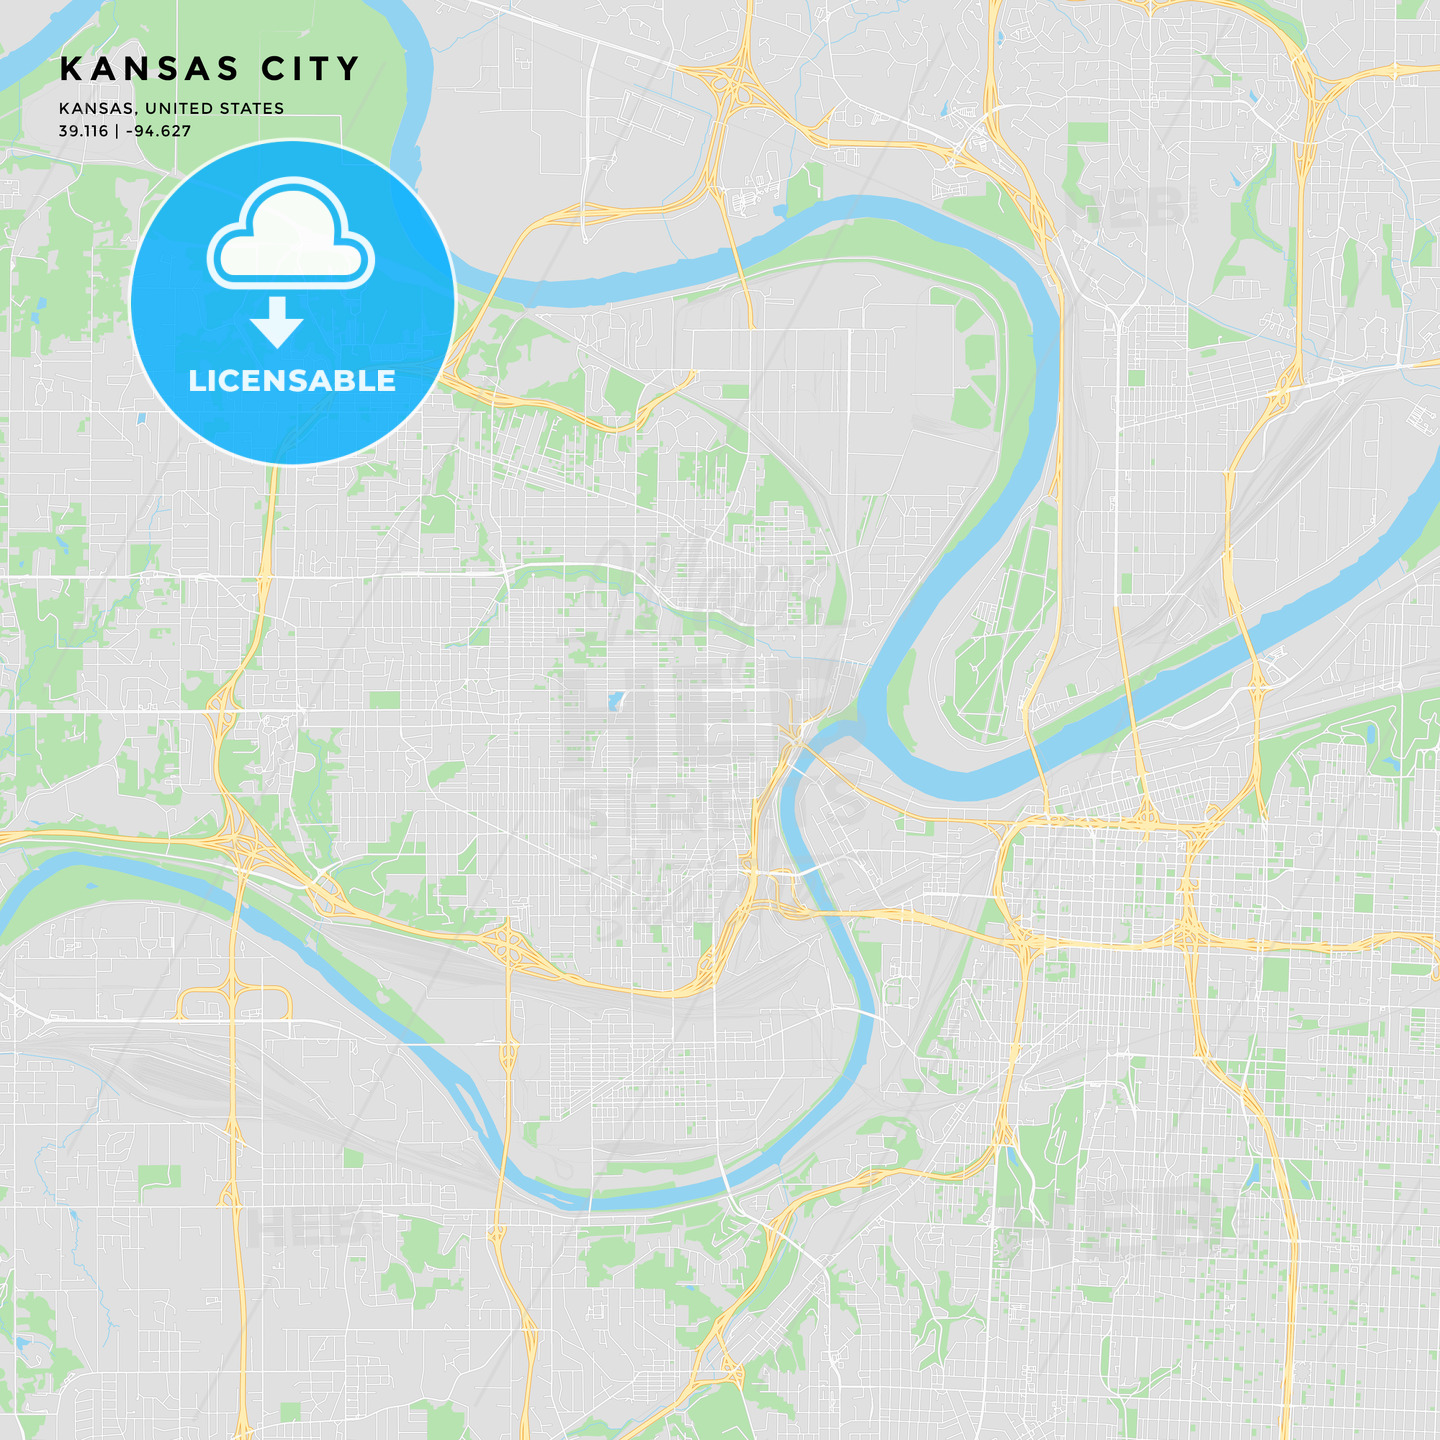 Printable street map of Kansas City, Kansas | HEBSTREITS Sketches